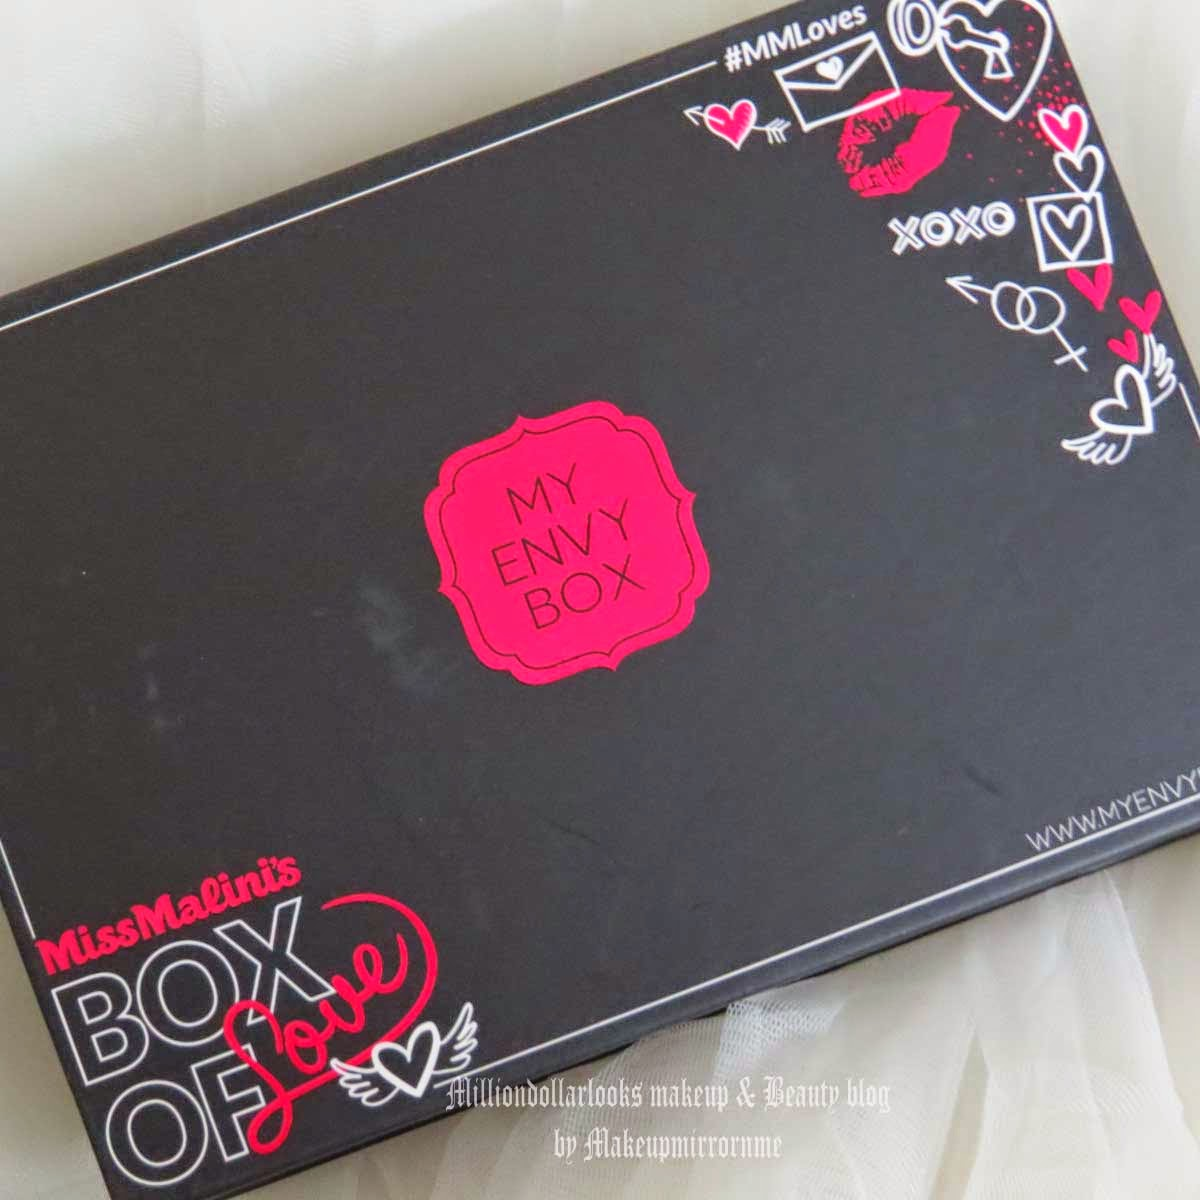 My Envy Box February Miss Malini's Once in a Valentine Box of Love Review, Price & Pictures, My envy box february 2015 review, My envy box special valentine edition review, Indian makeup and beauty blog, Miss malini once in a valentine box of love review, My envy box miss malini's box of love review, Indian beauty blog, Indian beauty blogger, Makeup and beauty blog india, Monthly beauty sample box services in India, Best beauty boxes available in India, Calvin Klein, Vana vidhi, Innisfree, Skin yoga, LYN, Top beauty blogs in India, MillionDollarLooks